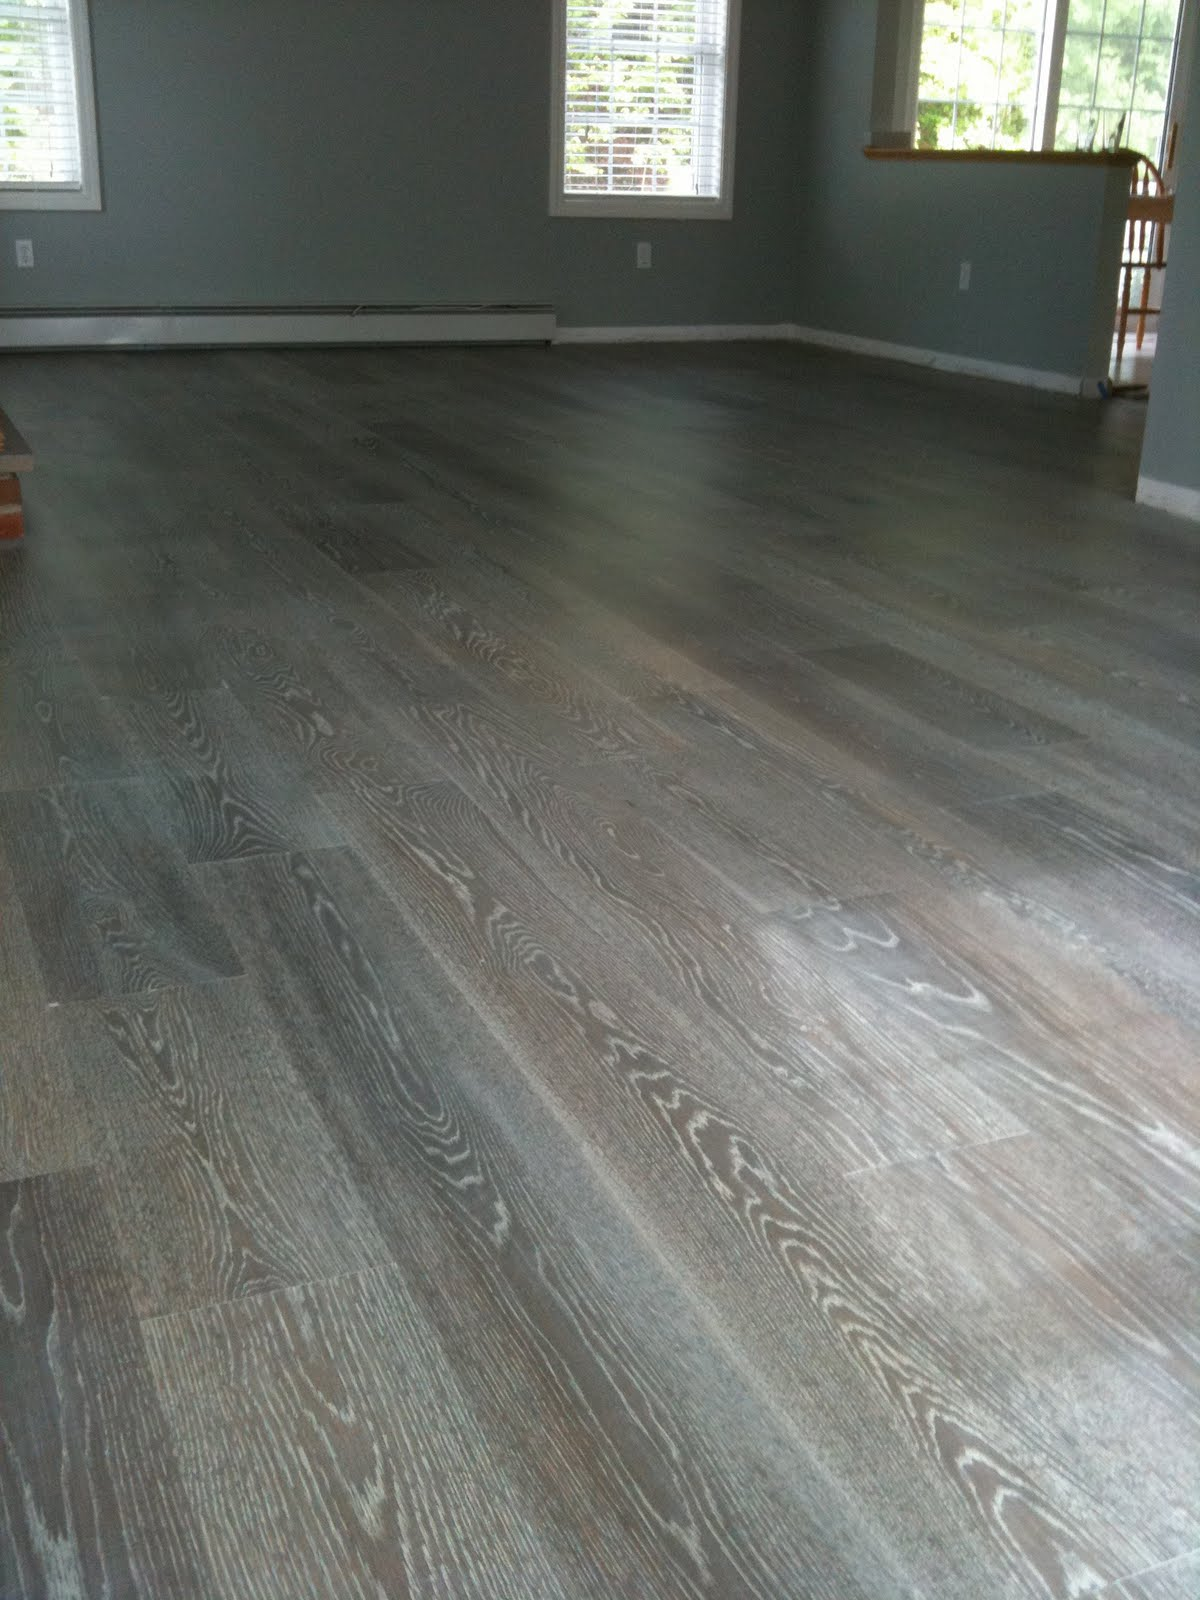 True wesson interior design project gray hardwood floors - Grey wood floors modern interior design ...